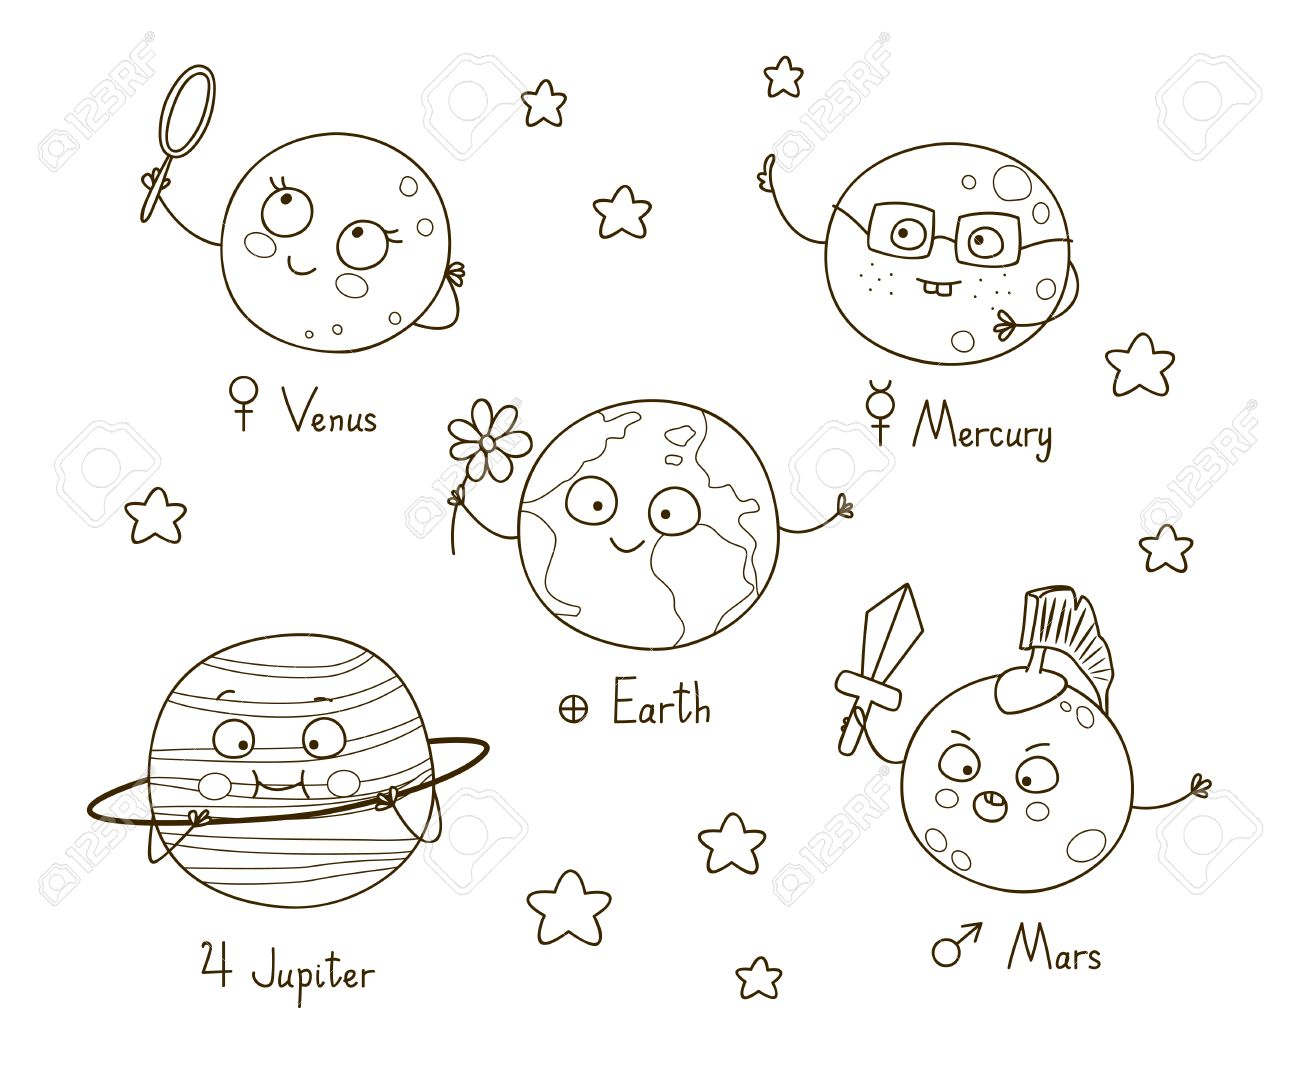 Cute cartoon planets for coloring book